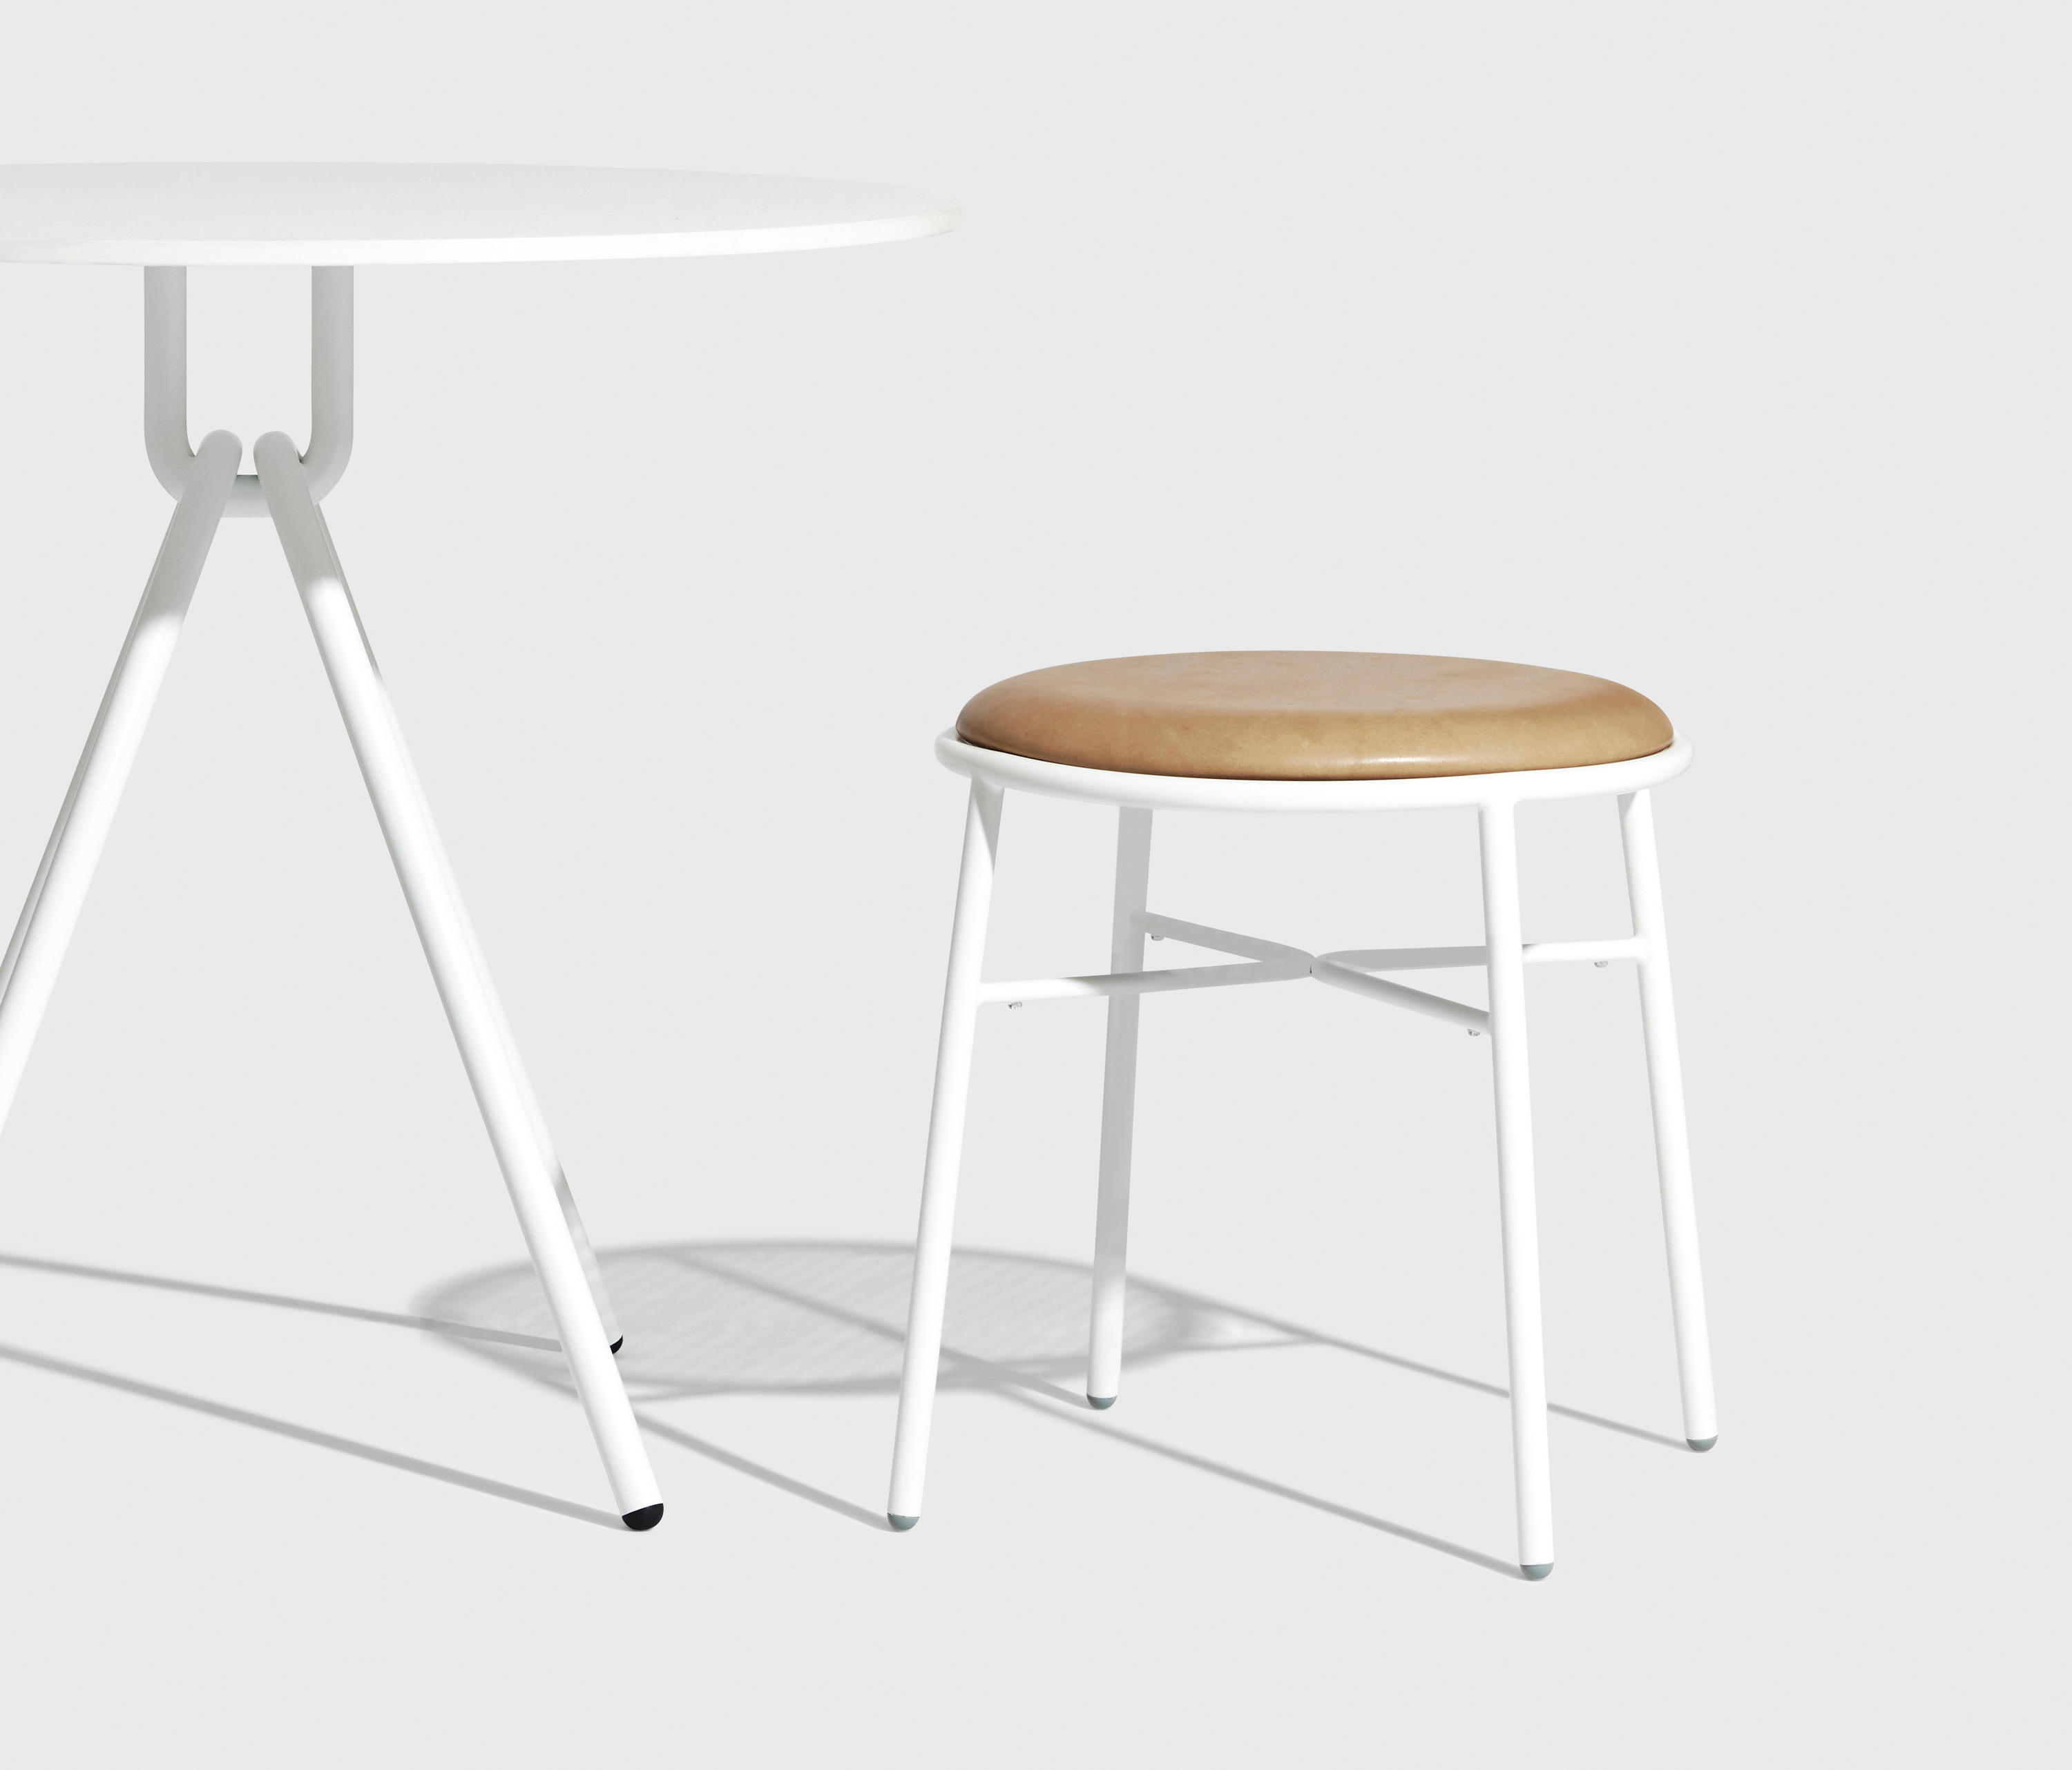 Astonishing Piper Bar Stool Designer Furniture Architonic Gmtry Best Dining Table And Chair Ideas Images Gmtryco